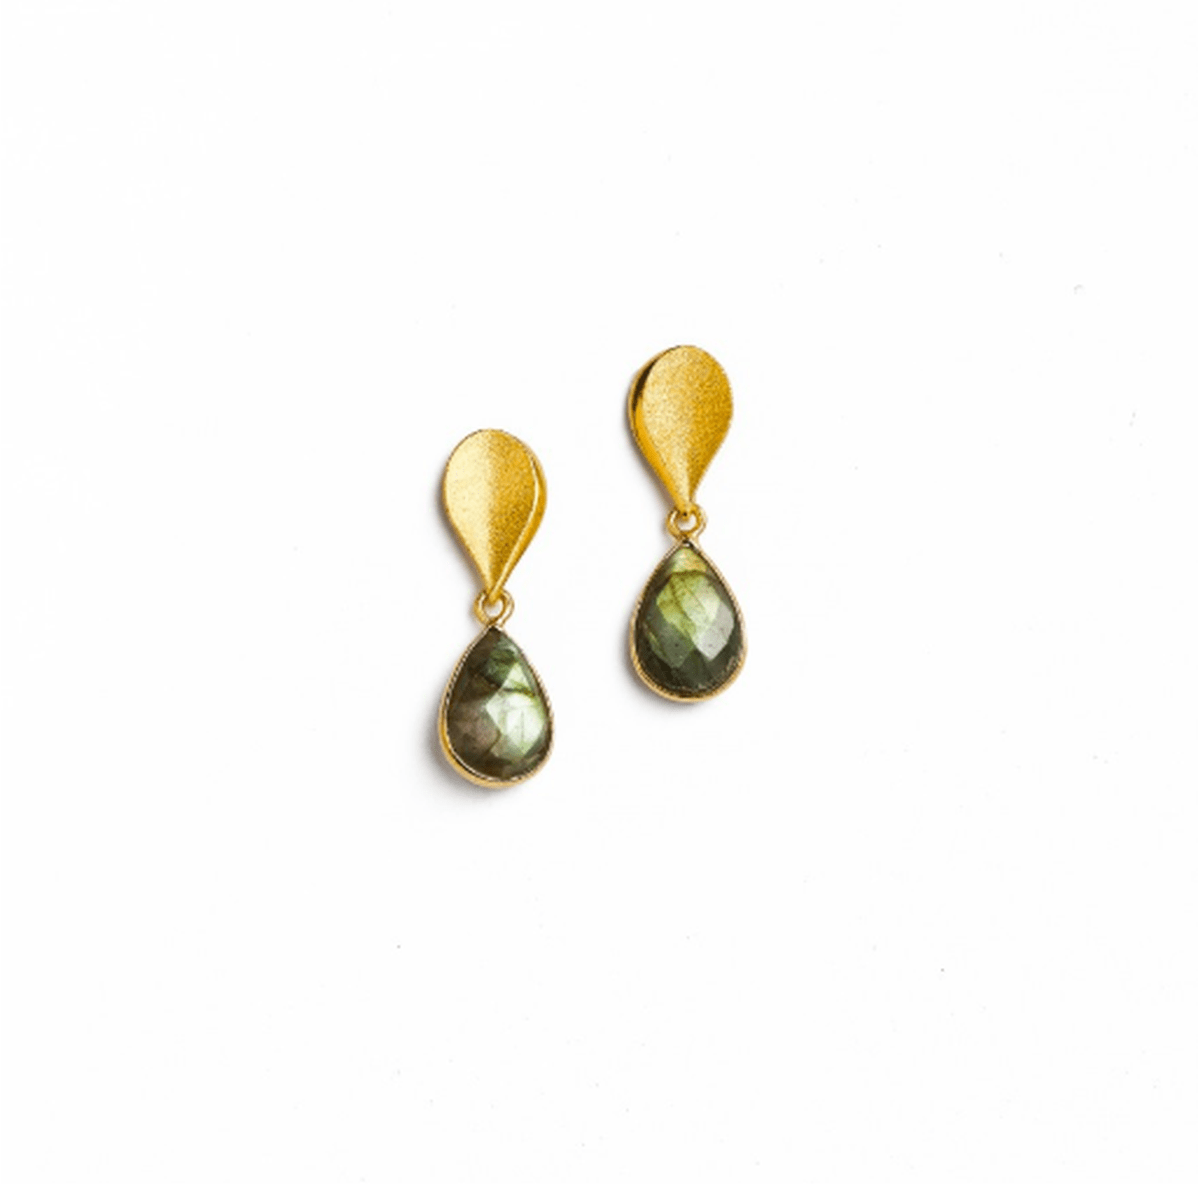 Sequini Labradorite Earrings - 15707616-Bernd Wolf-Renee Taylor Gallery